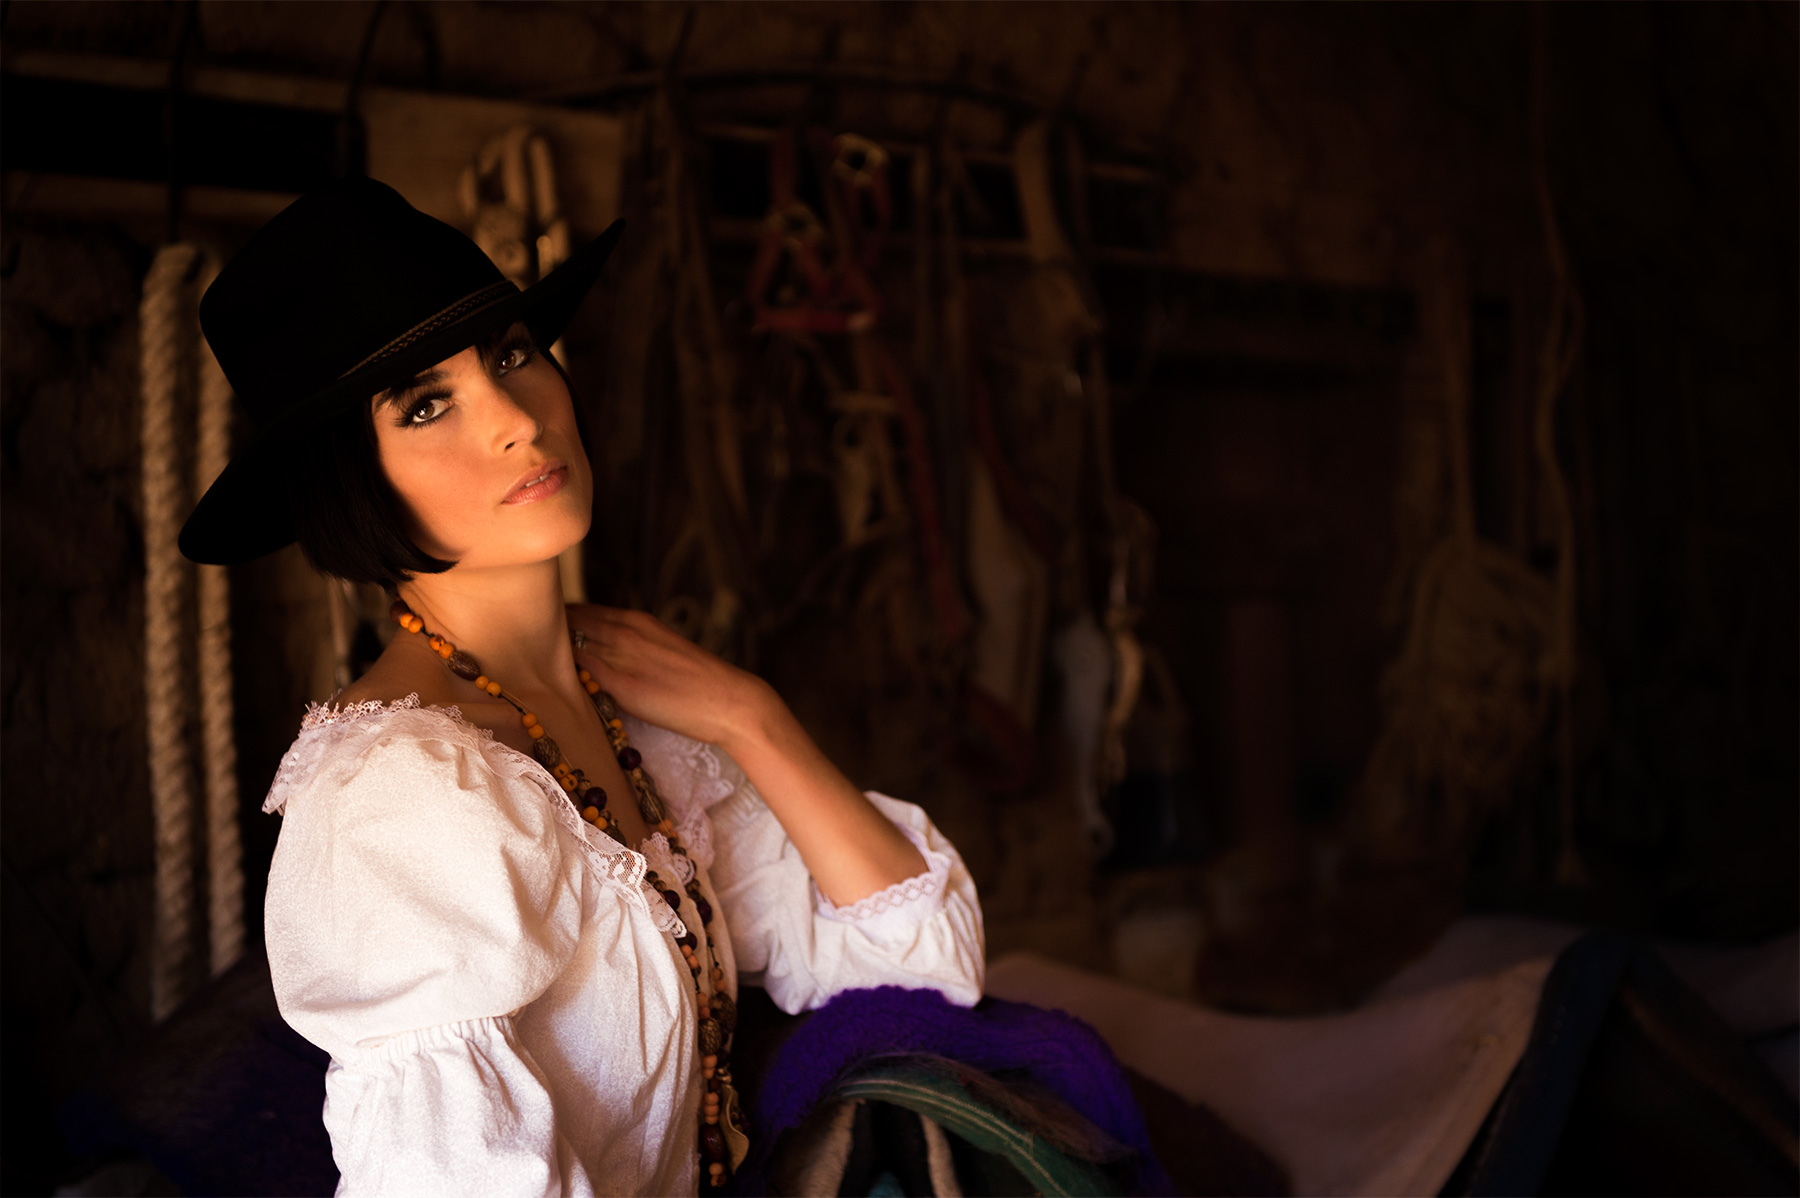 Fashion photo with a cowgirl inside a tack room on a ranch near the Mexico/Arizona border